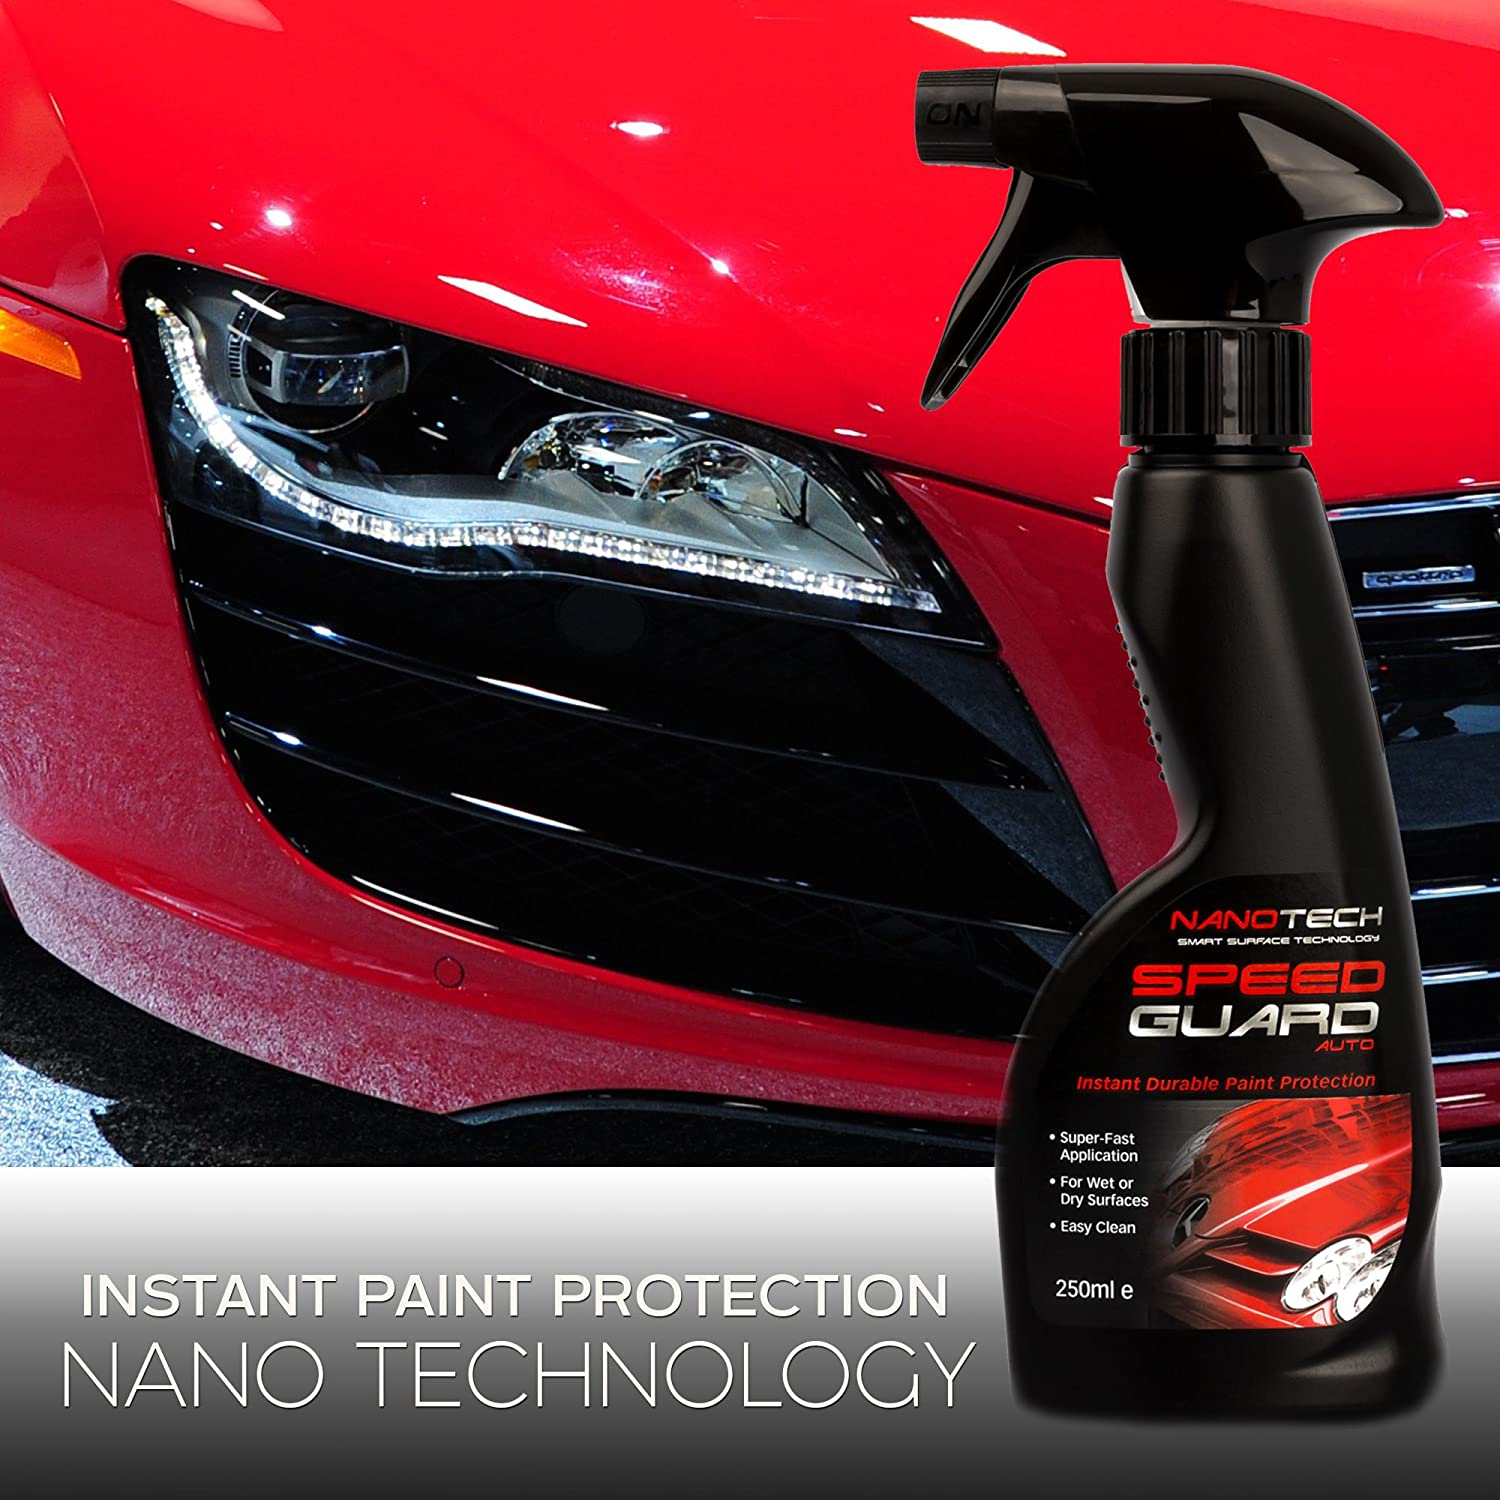 Speed guard spray replaces car wax and polish nano coating technology instant paint protection seal caravan and motorbike cleaner works on alloy